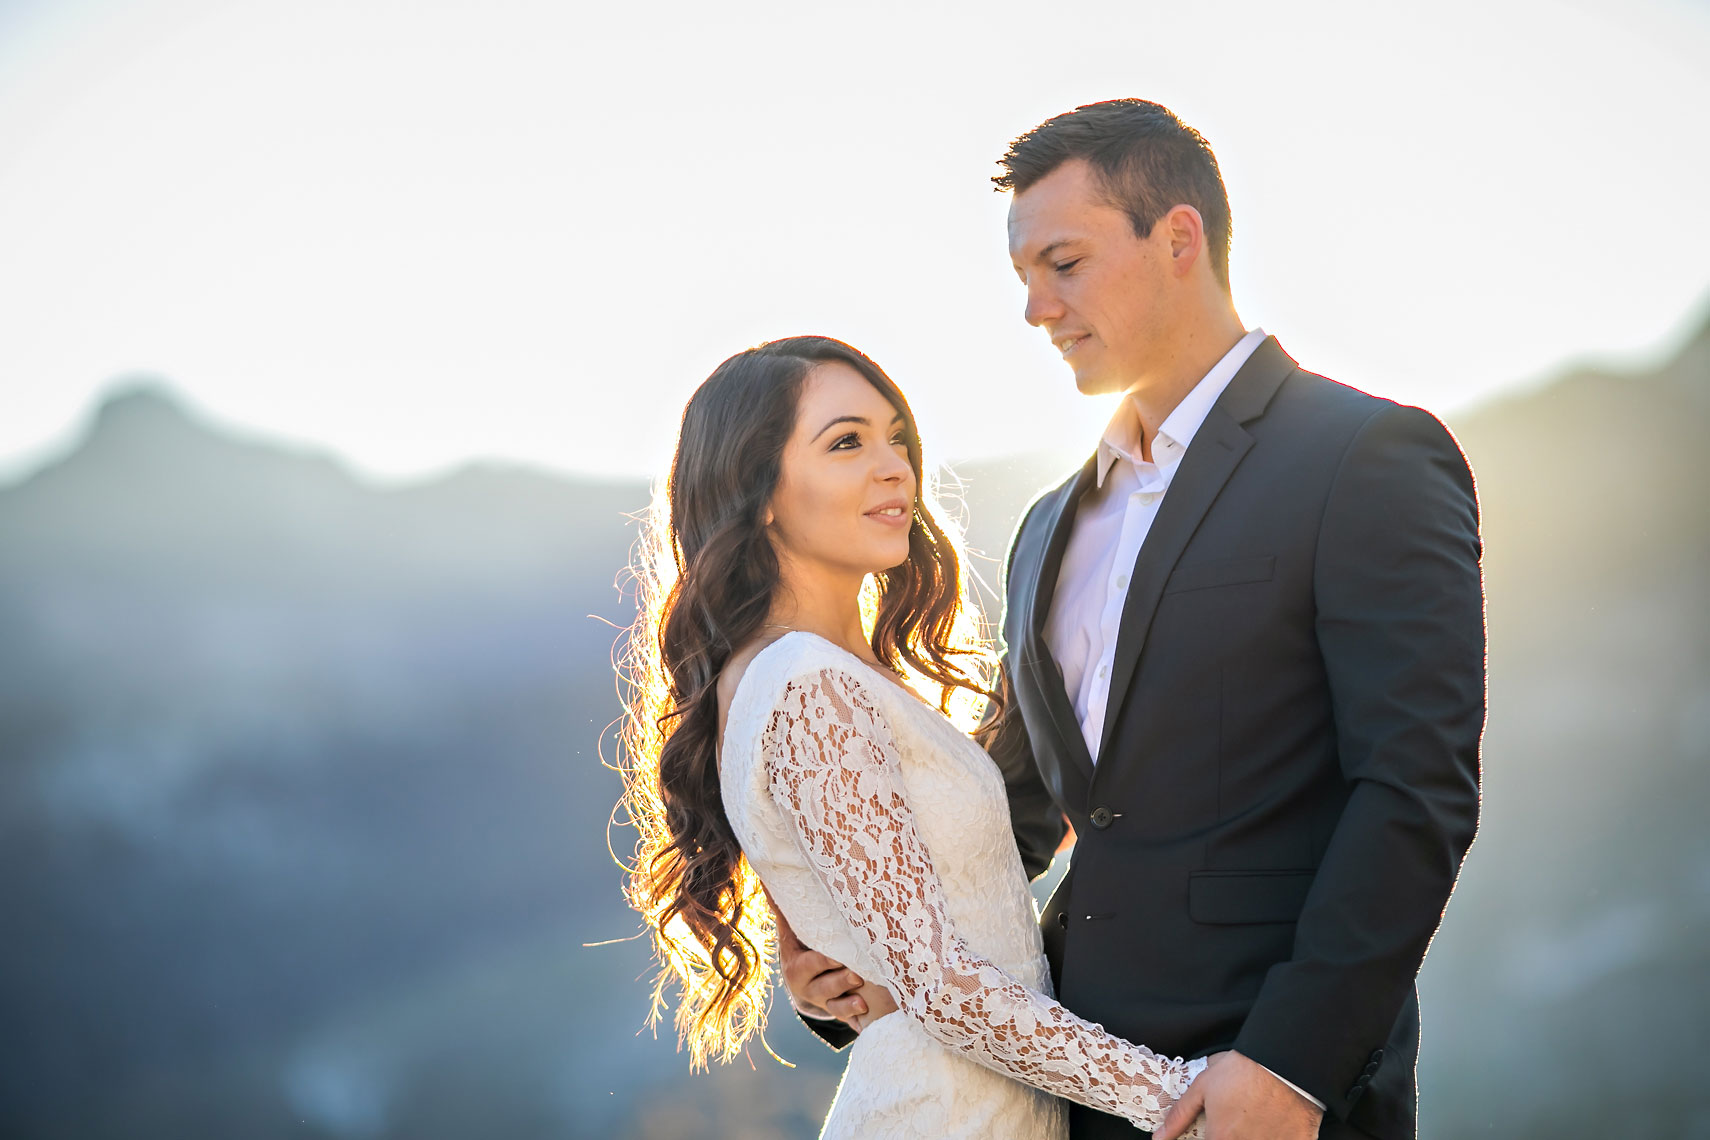 Yosemite_wedding_photographer_elopement_photography-55